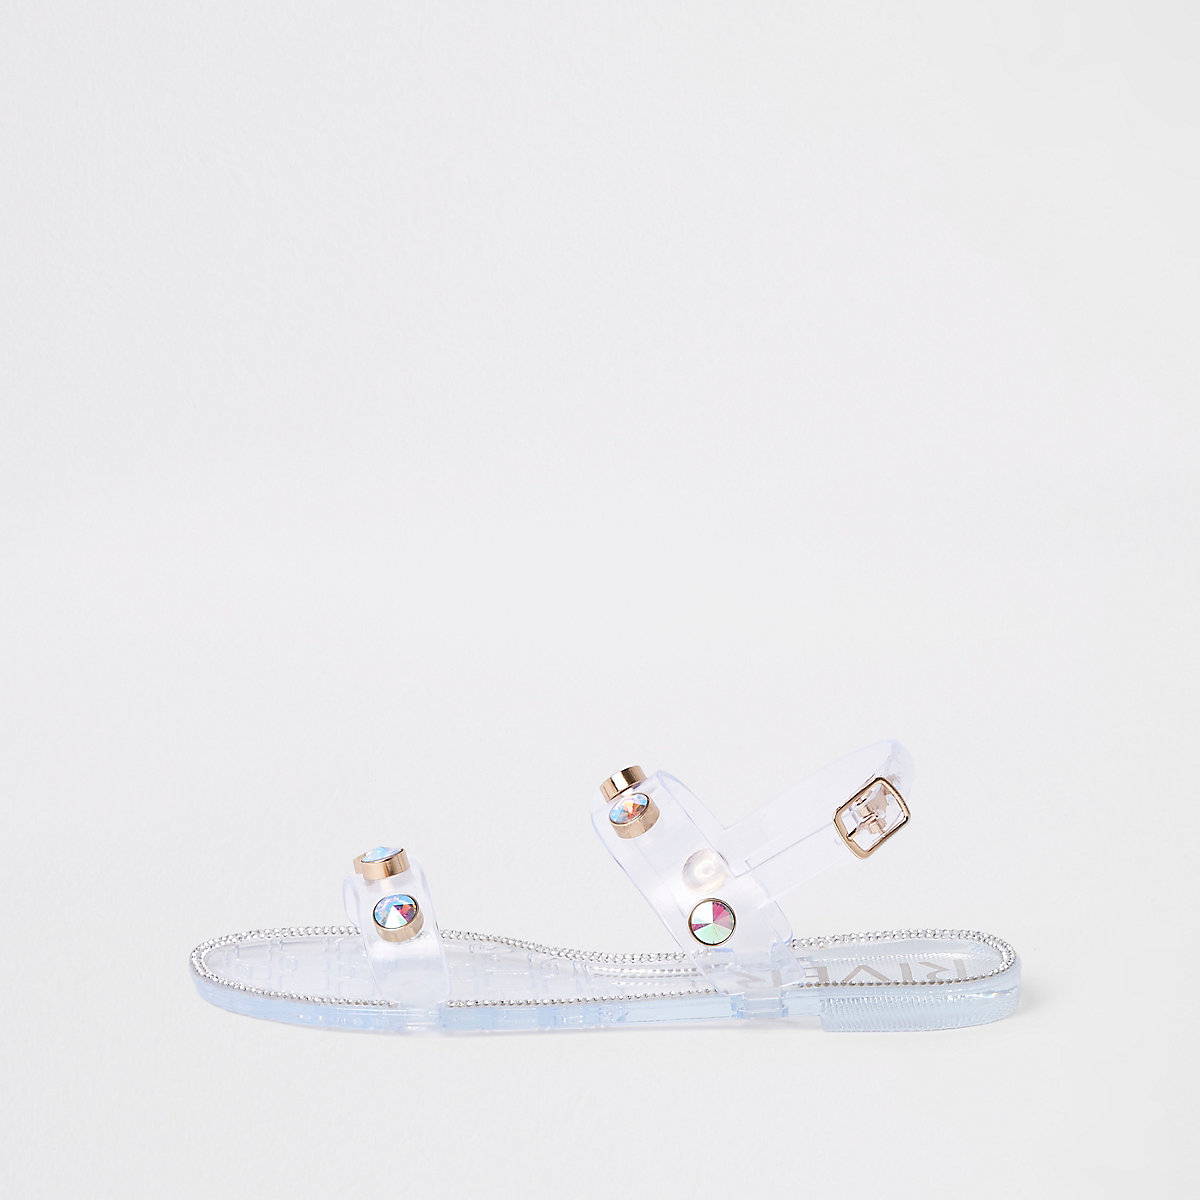 White jewel jelly sandals